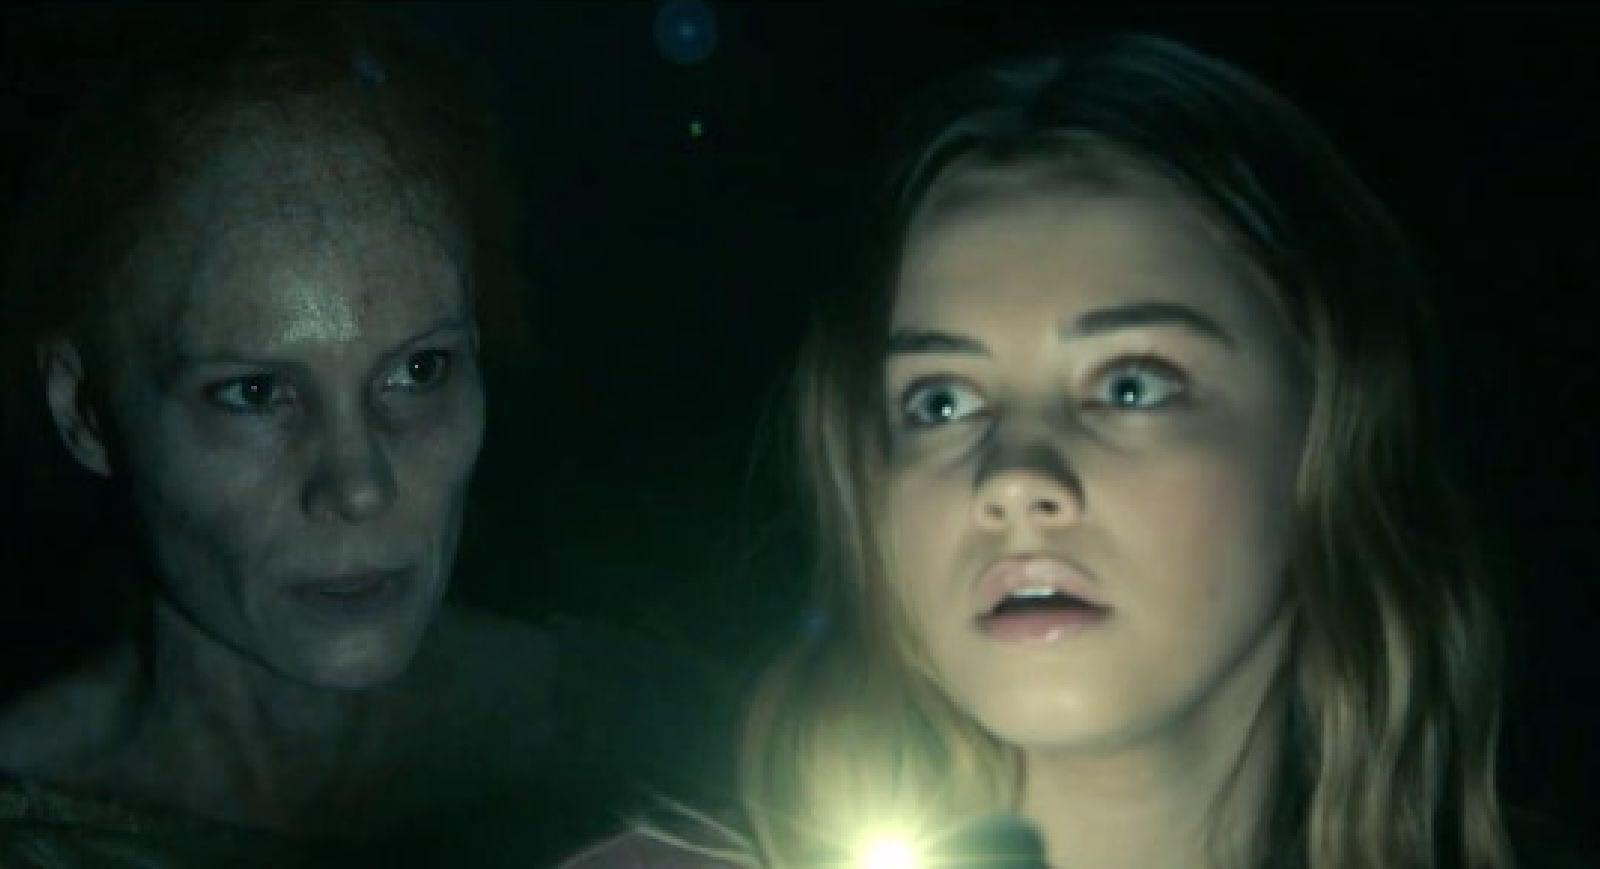 Into the Dark: They Come Knocking | Film Threat